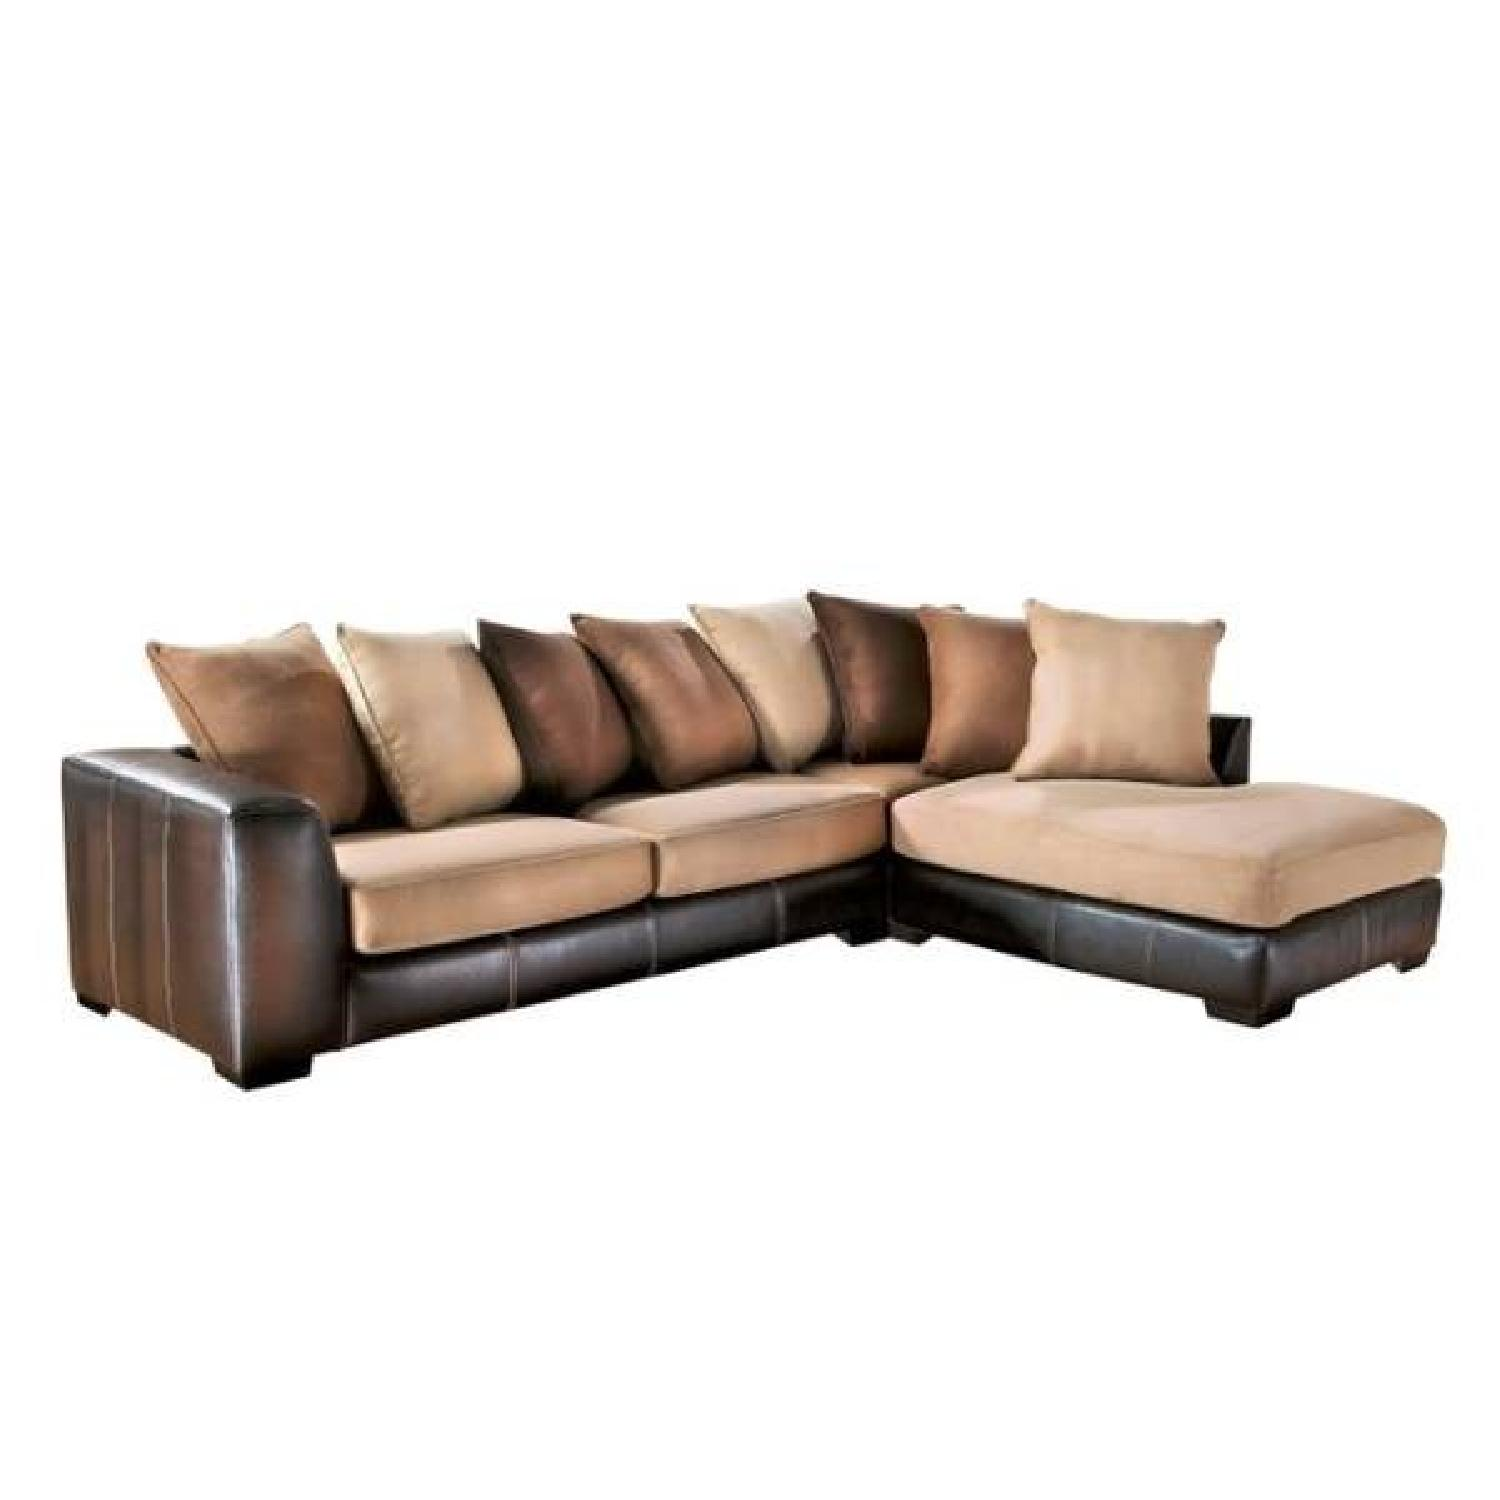 Rooms To Go 2-Piece Sectional Sofa & Ottoman